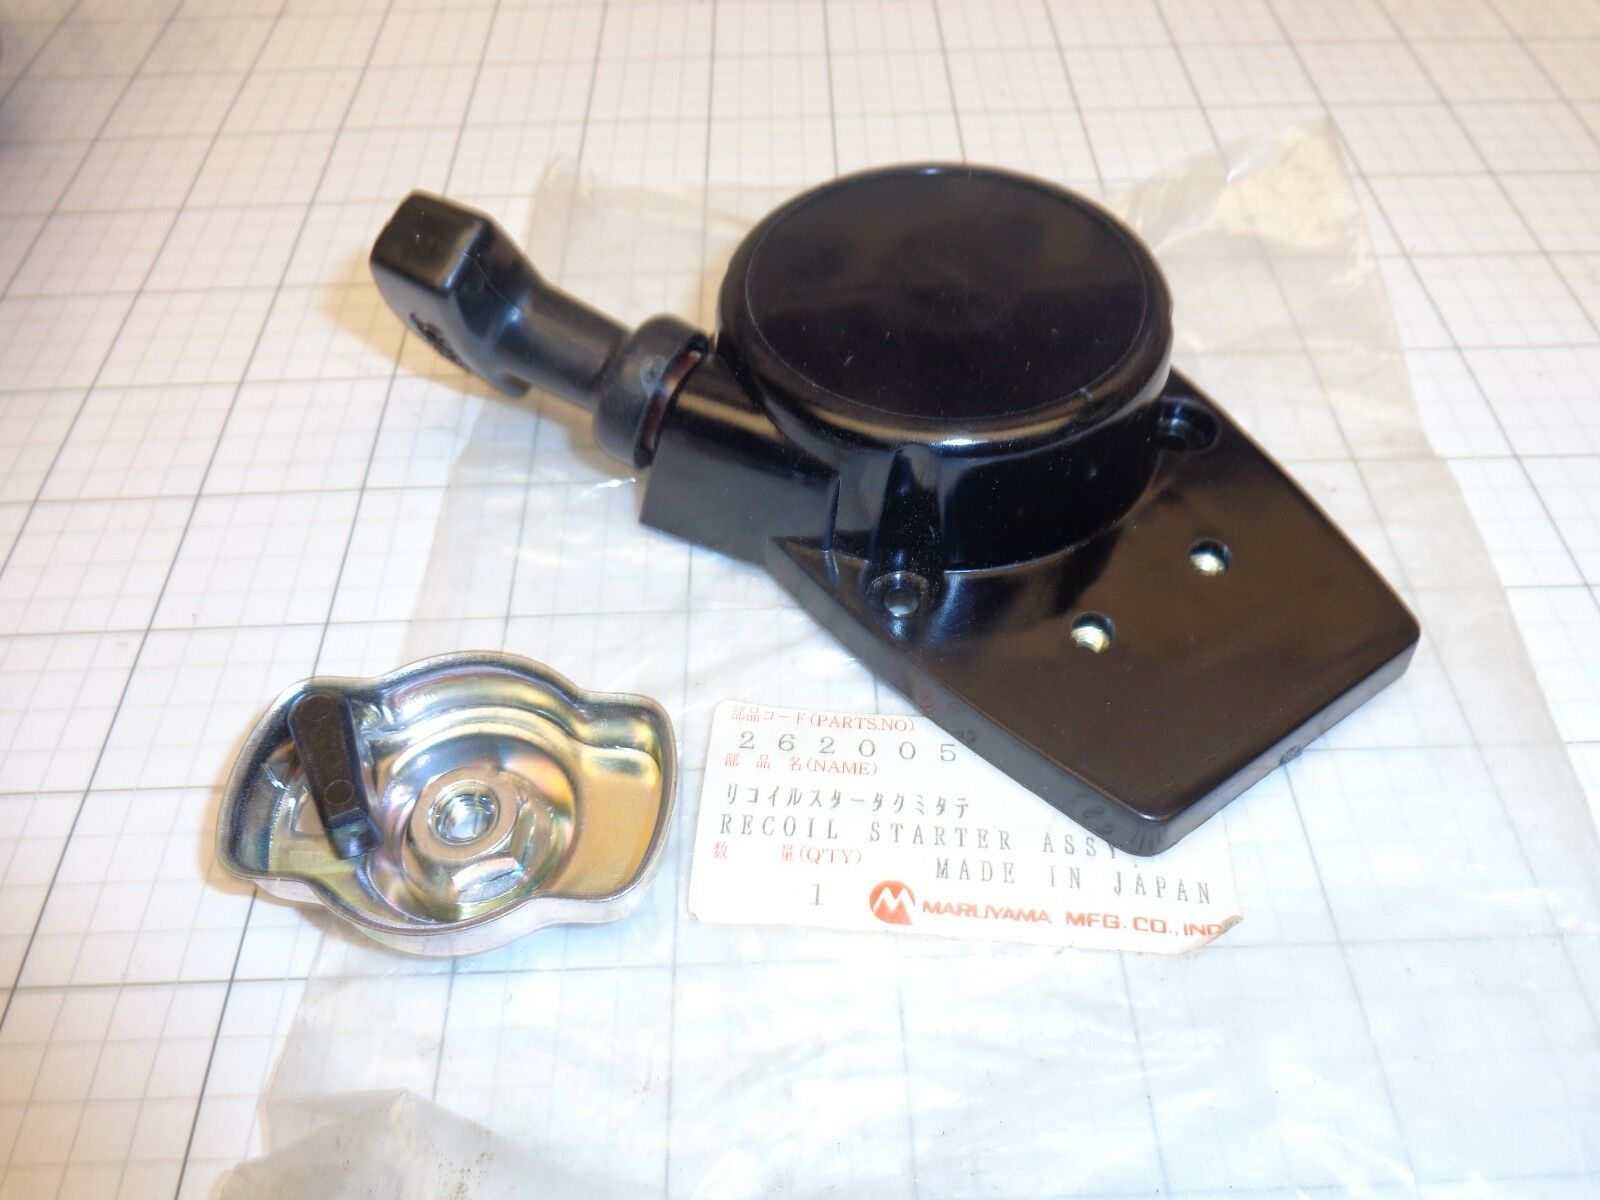 NEW OEM Maruyama Recoil Assembly Part # is 282960